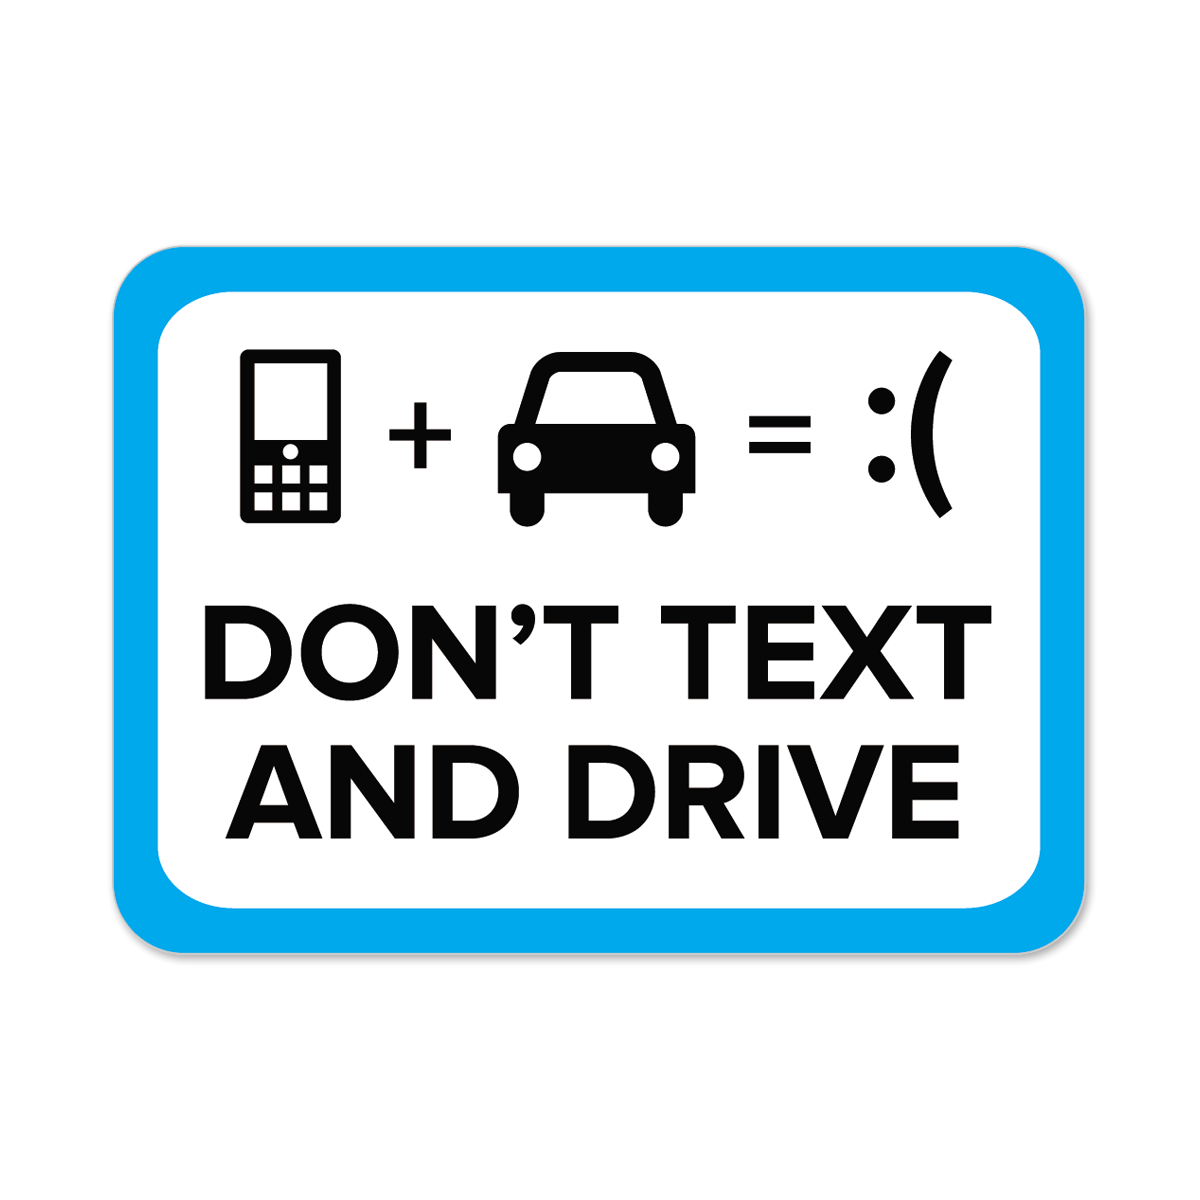 Dont text and drive 2 essay